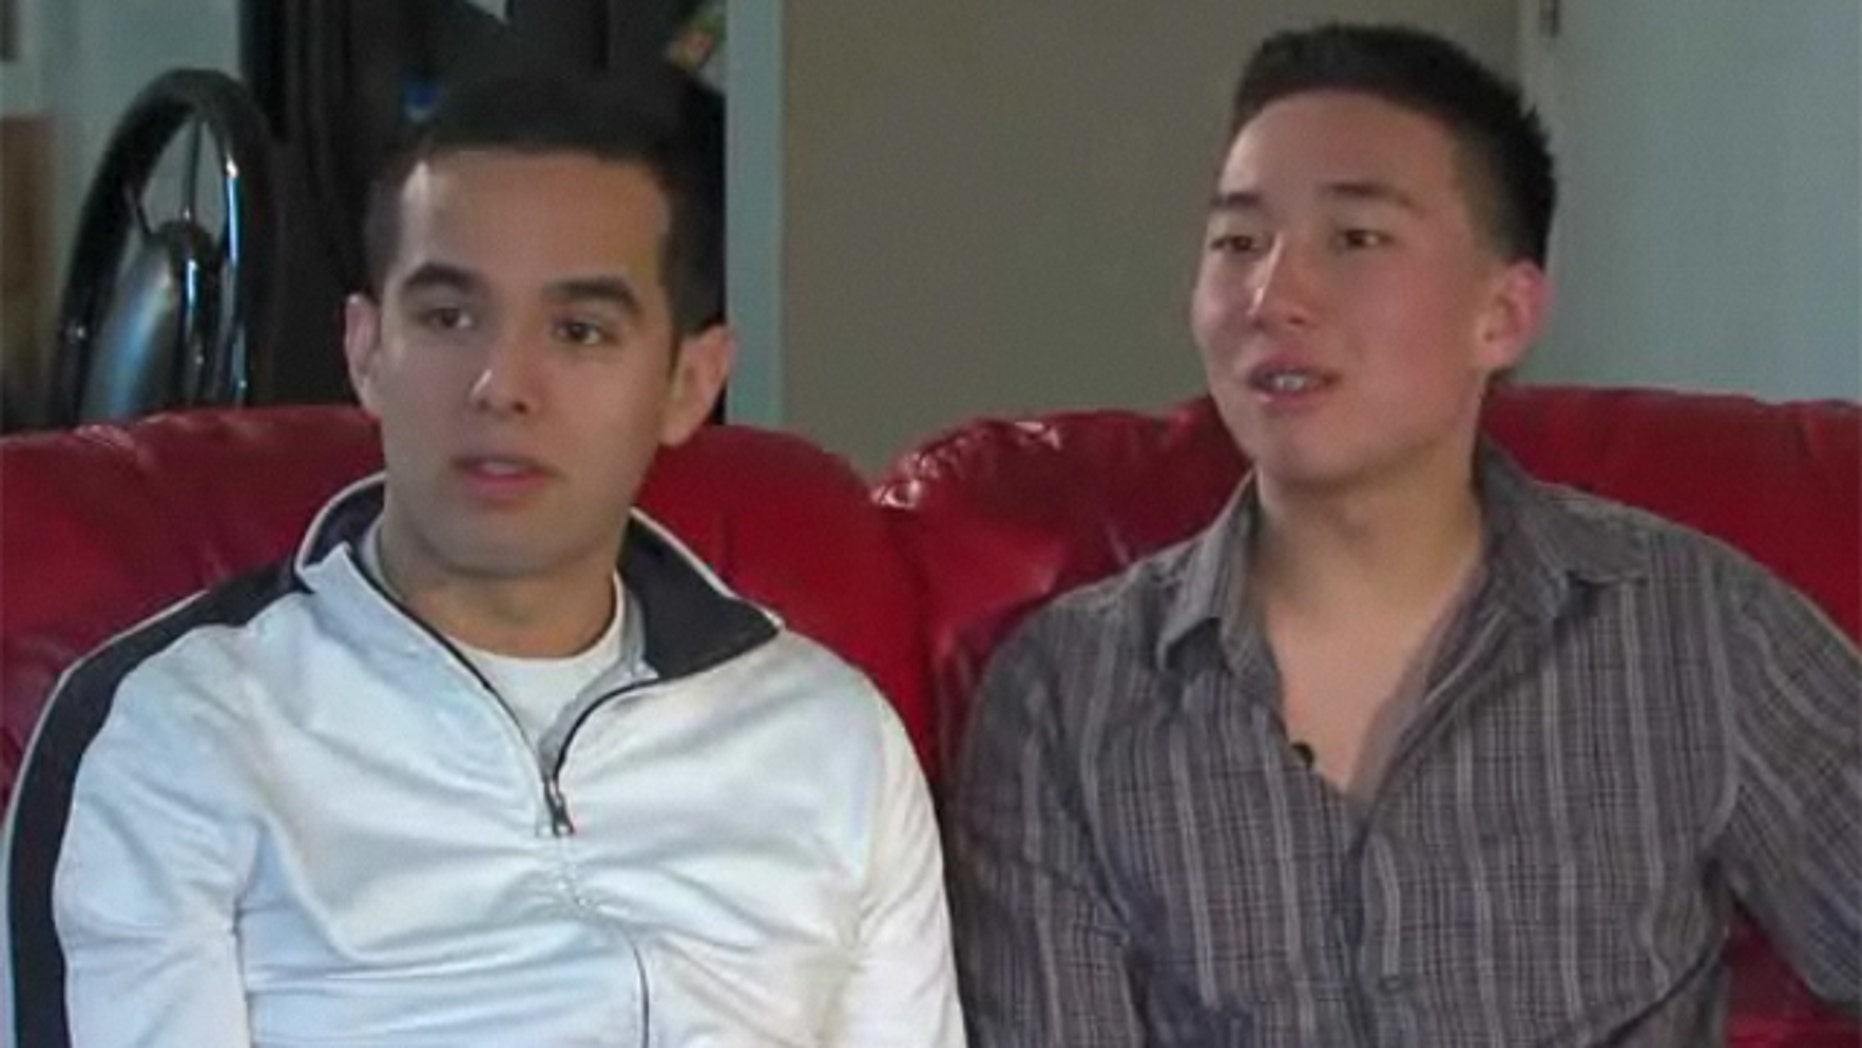 Mar. 4, 2013: Daniel Chesmore and Jose Guzman say they were kicked out of a local mall for PDA.